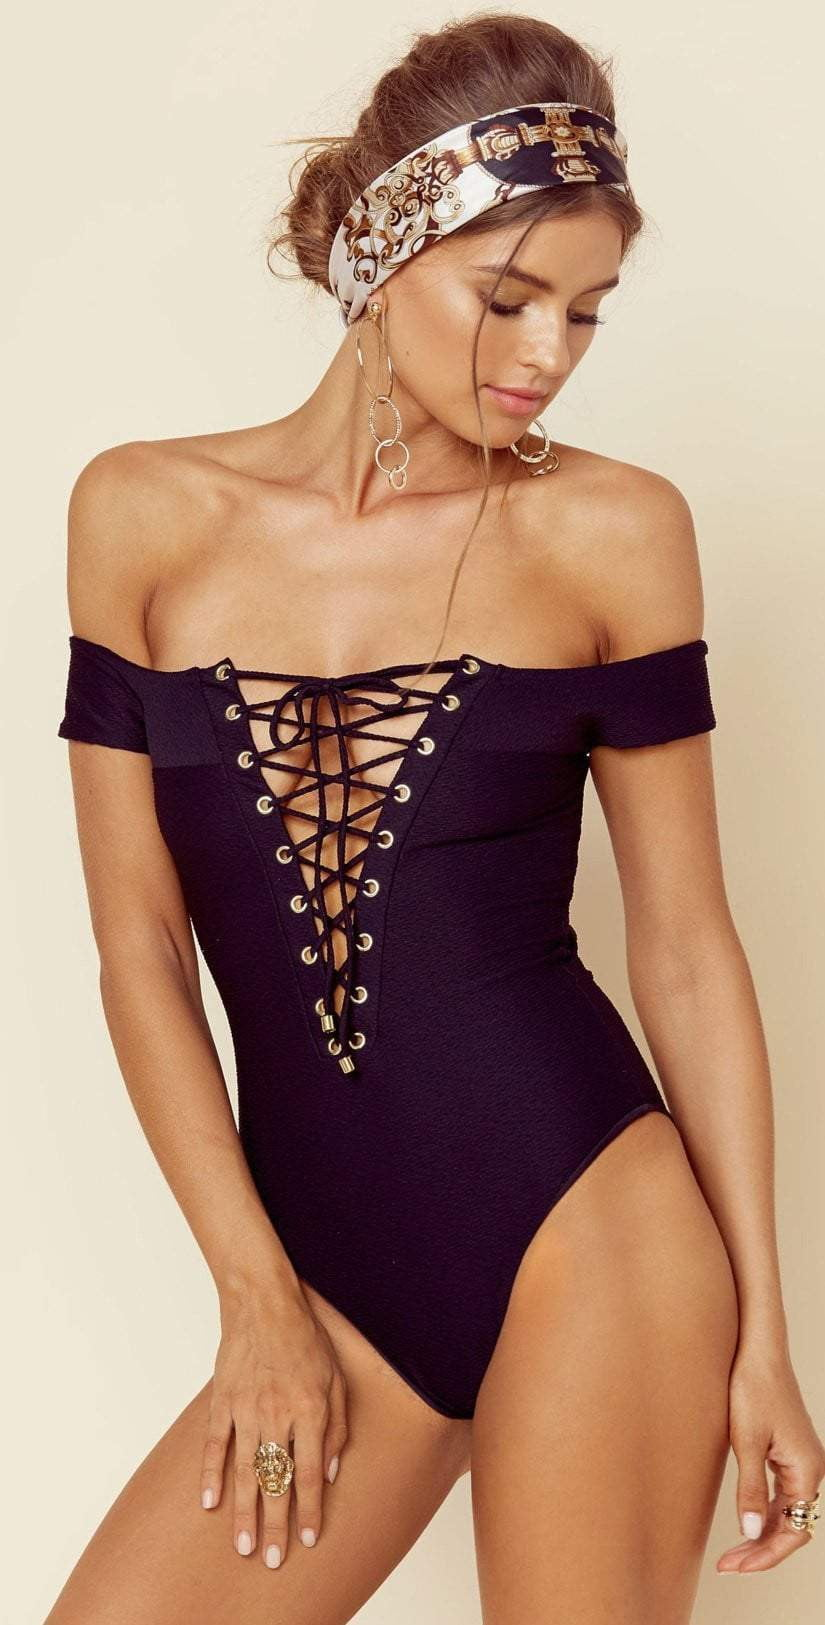 c85bc90a33 Blue Life Off The Shoulder One Piece in Black 388-9466 BLK – South ...